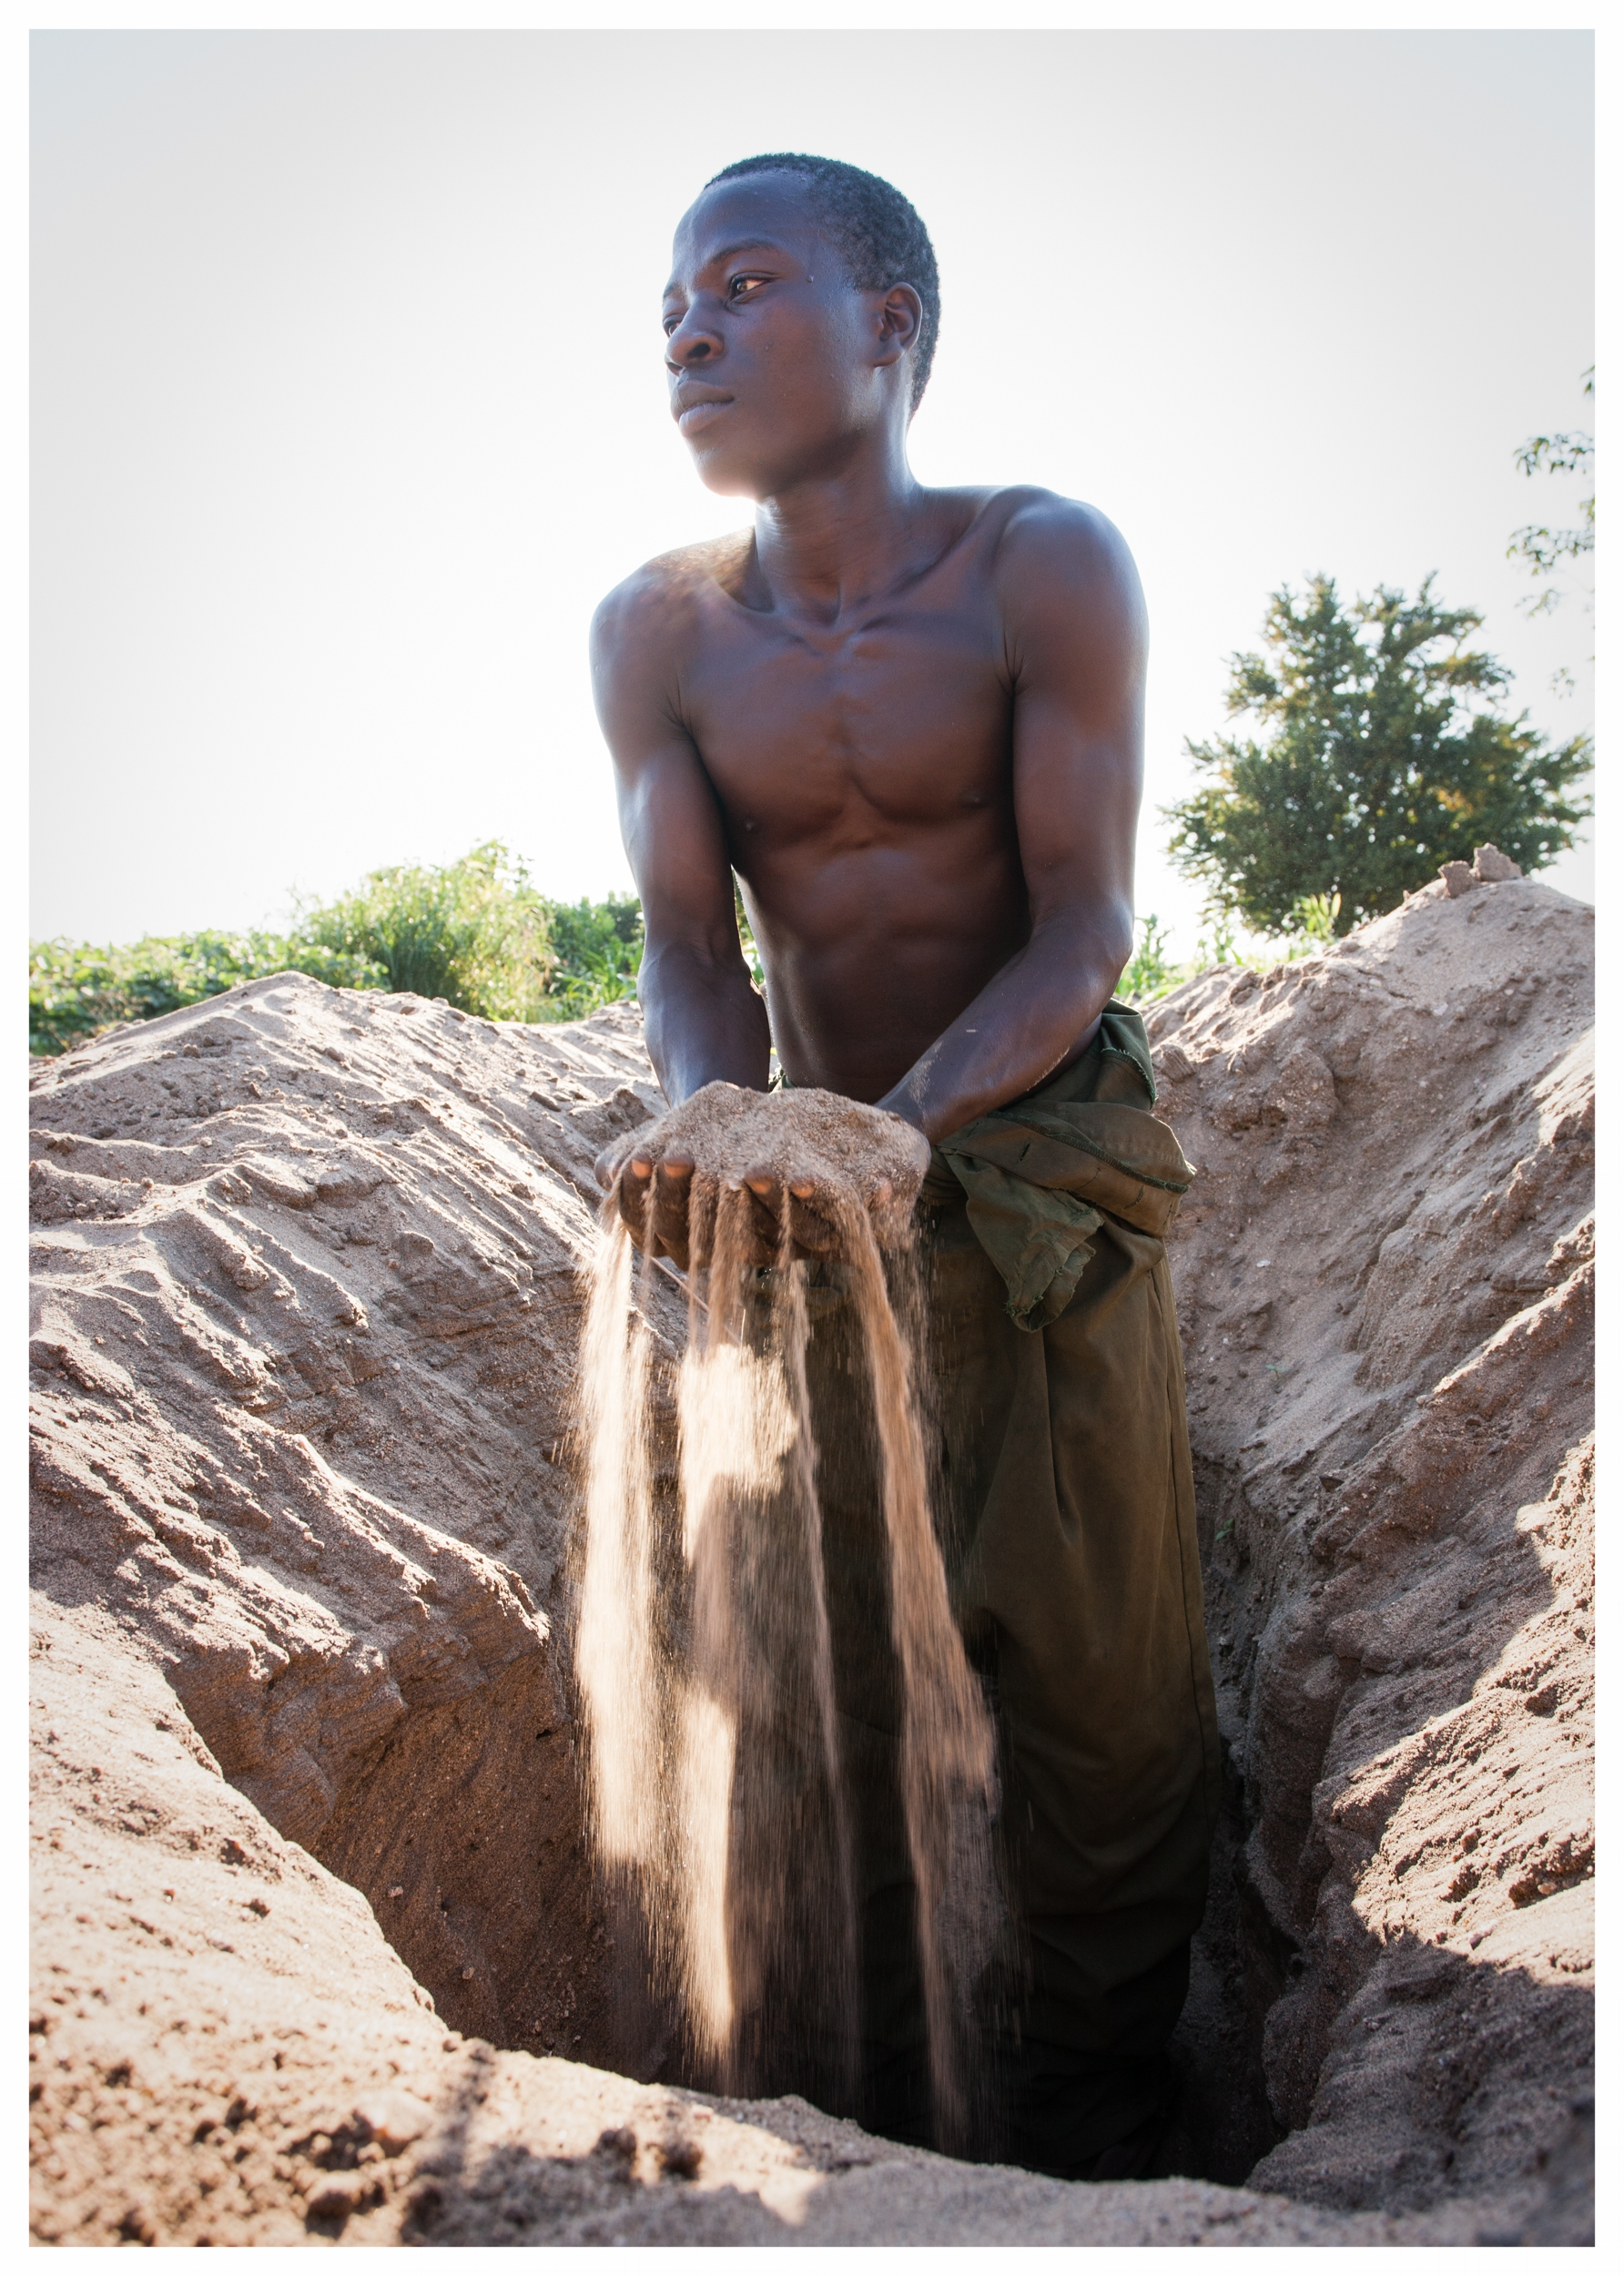 Andrew digs through sand to find fertile soil for his crop.Fombe,Chikwawa, Malawi. Photo © Marcus Perkins